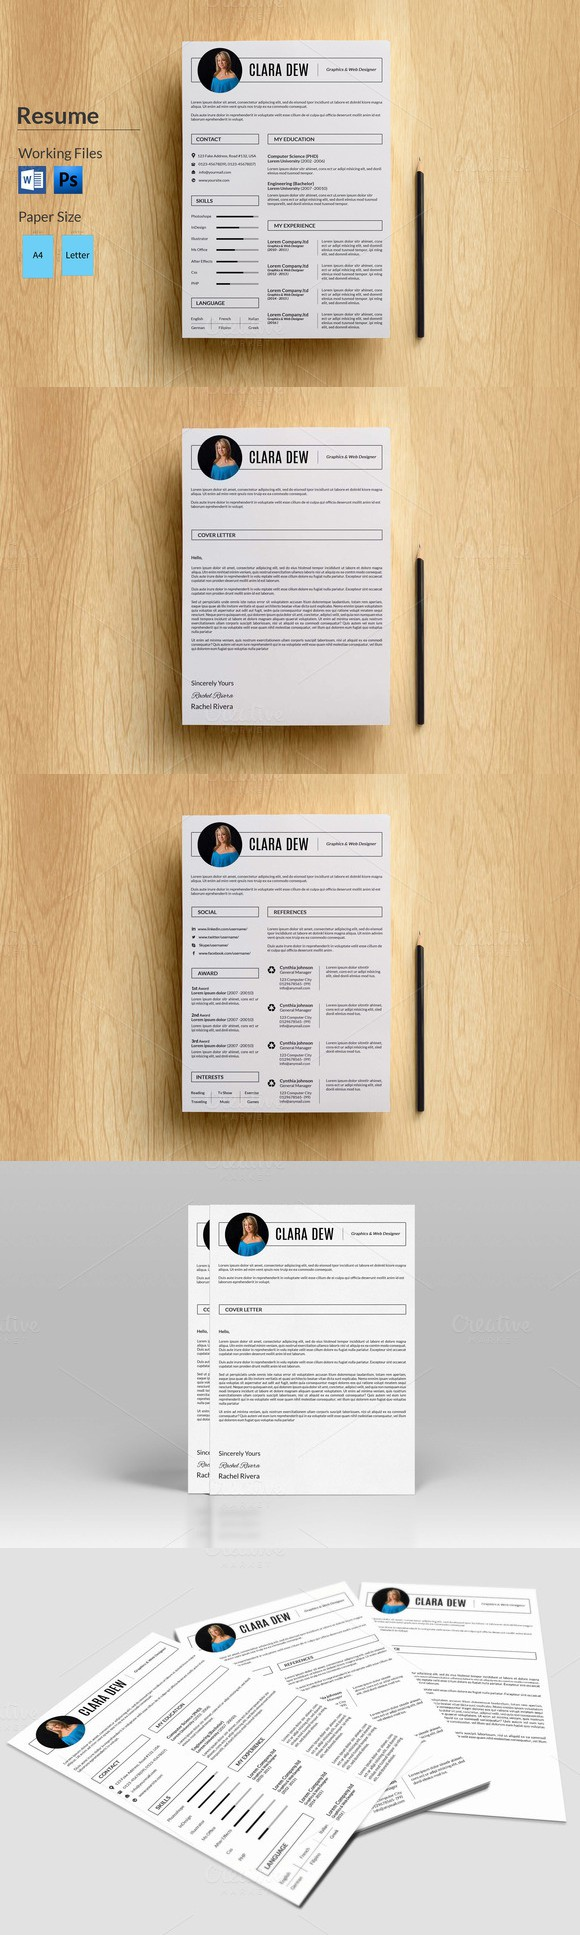 printable resume format%0A   Page Resume TemplateV